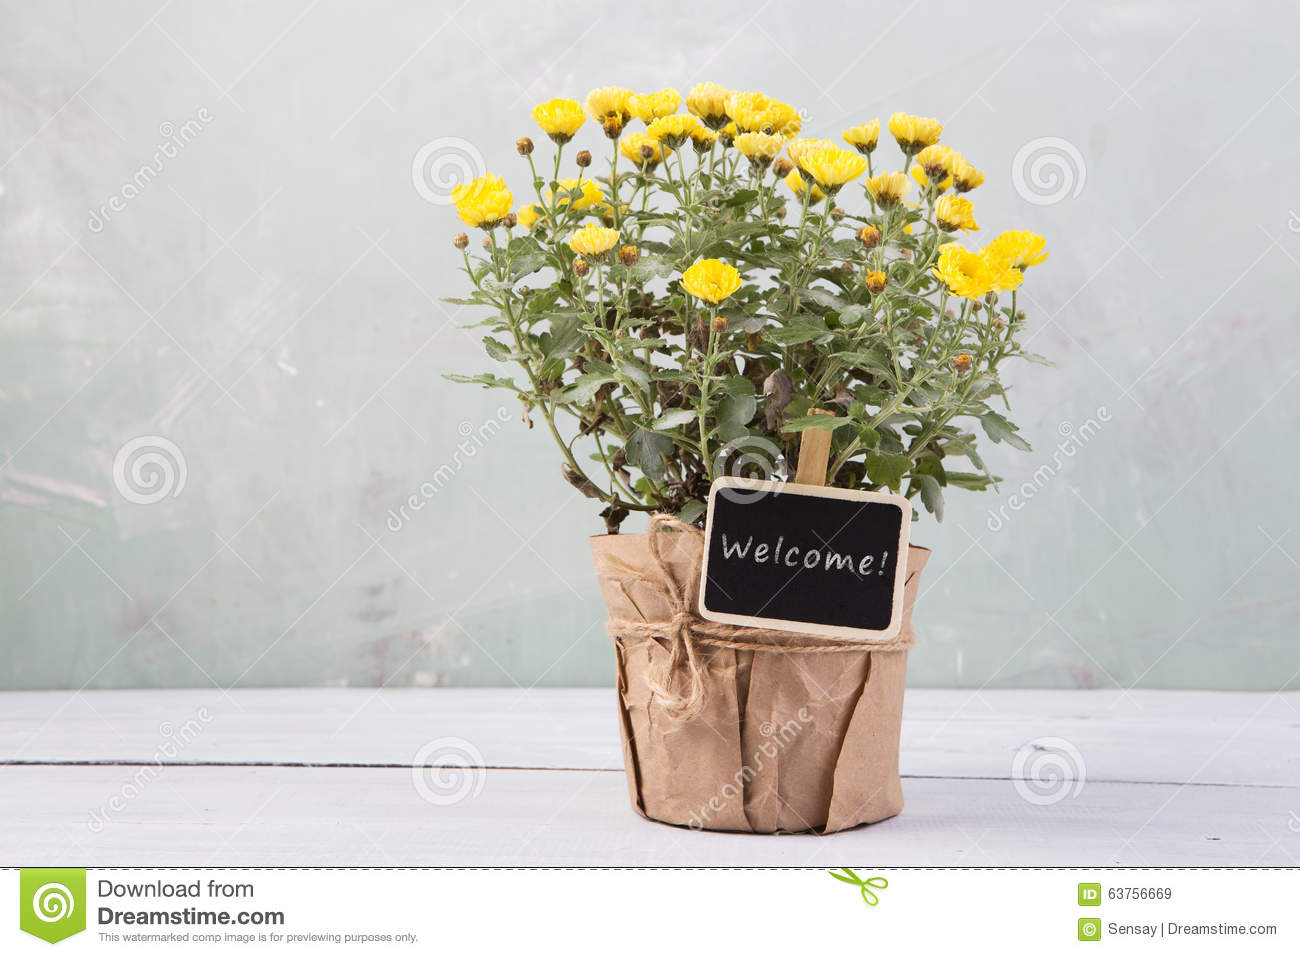 Welcome - beautiful flowers in pot with message card